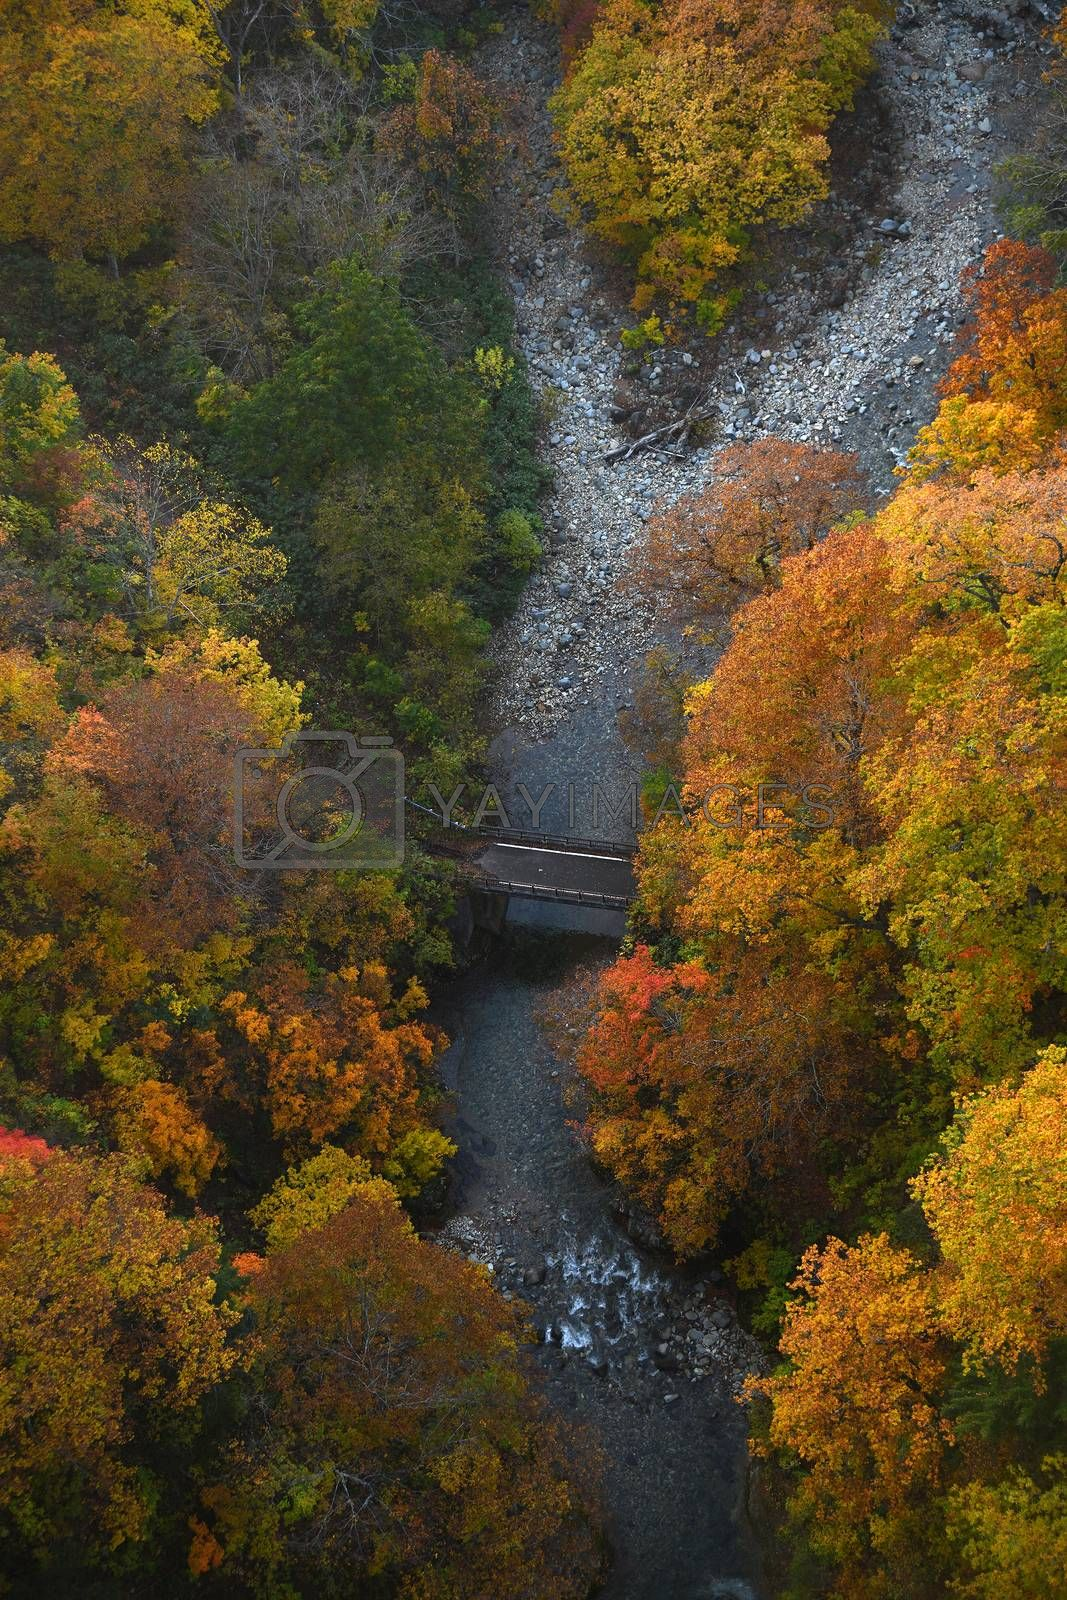 Royalty free image of Autumn forest in a river valley in Tohoku region near Aomori by porbital